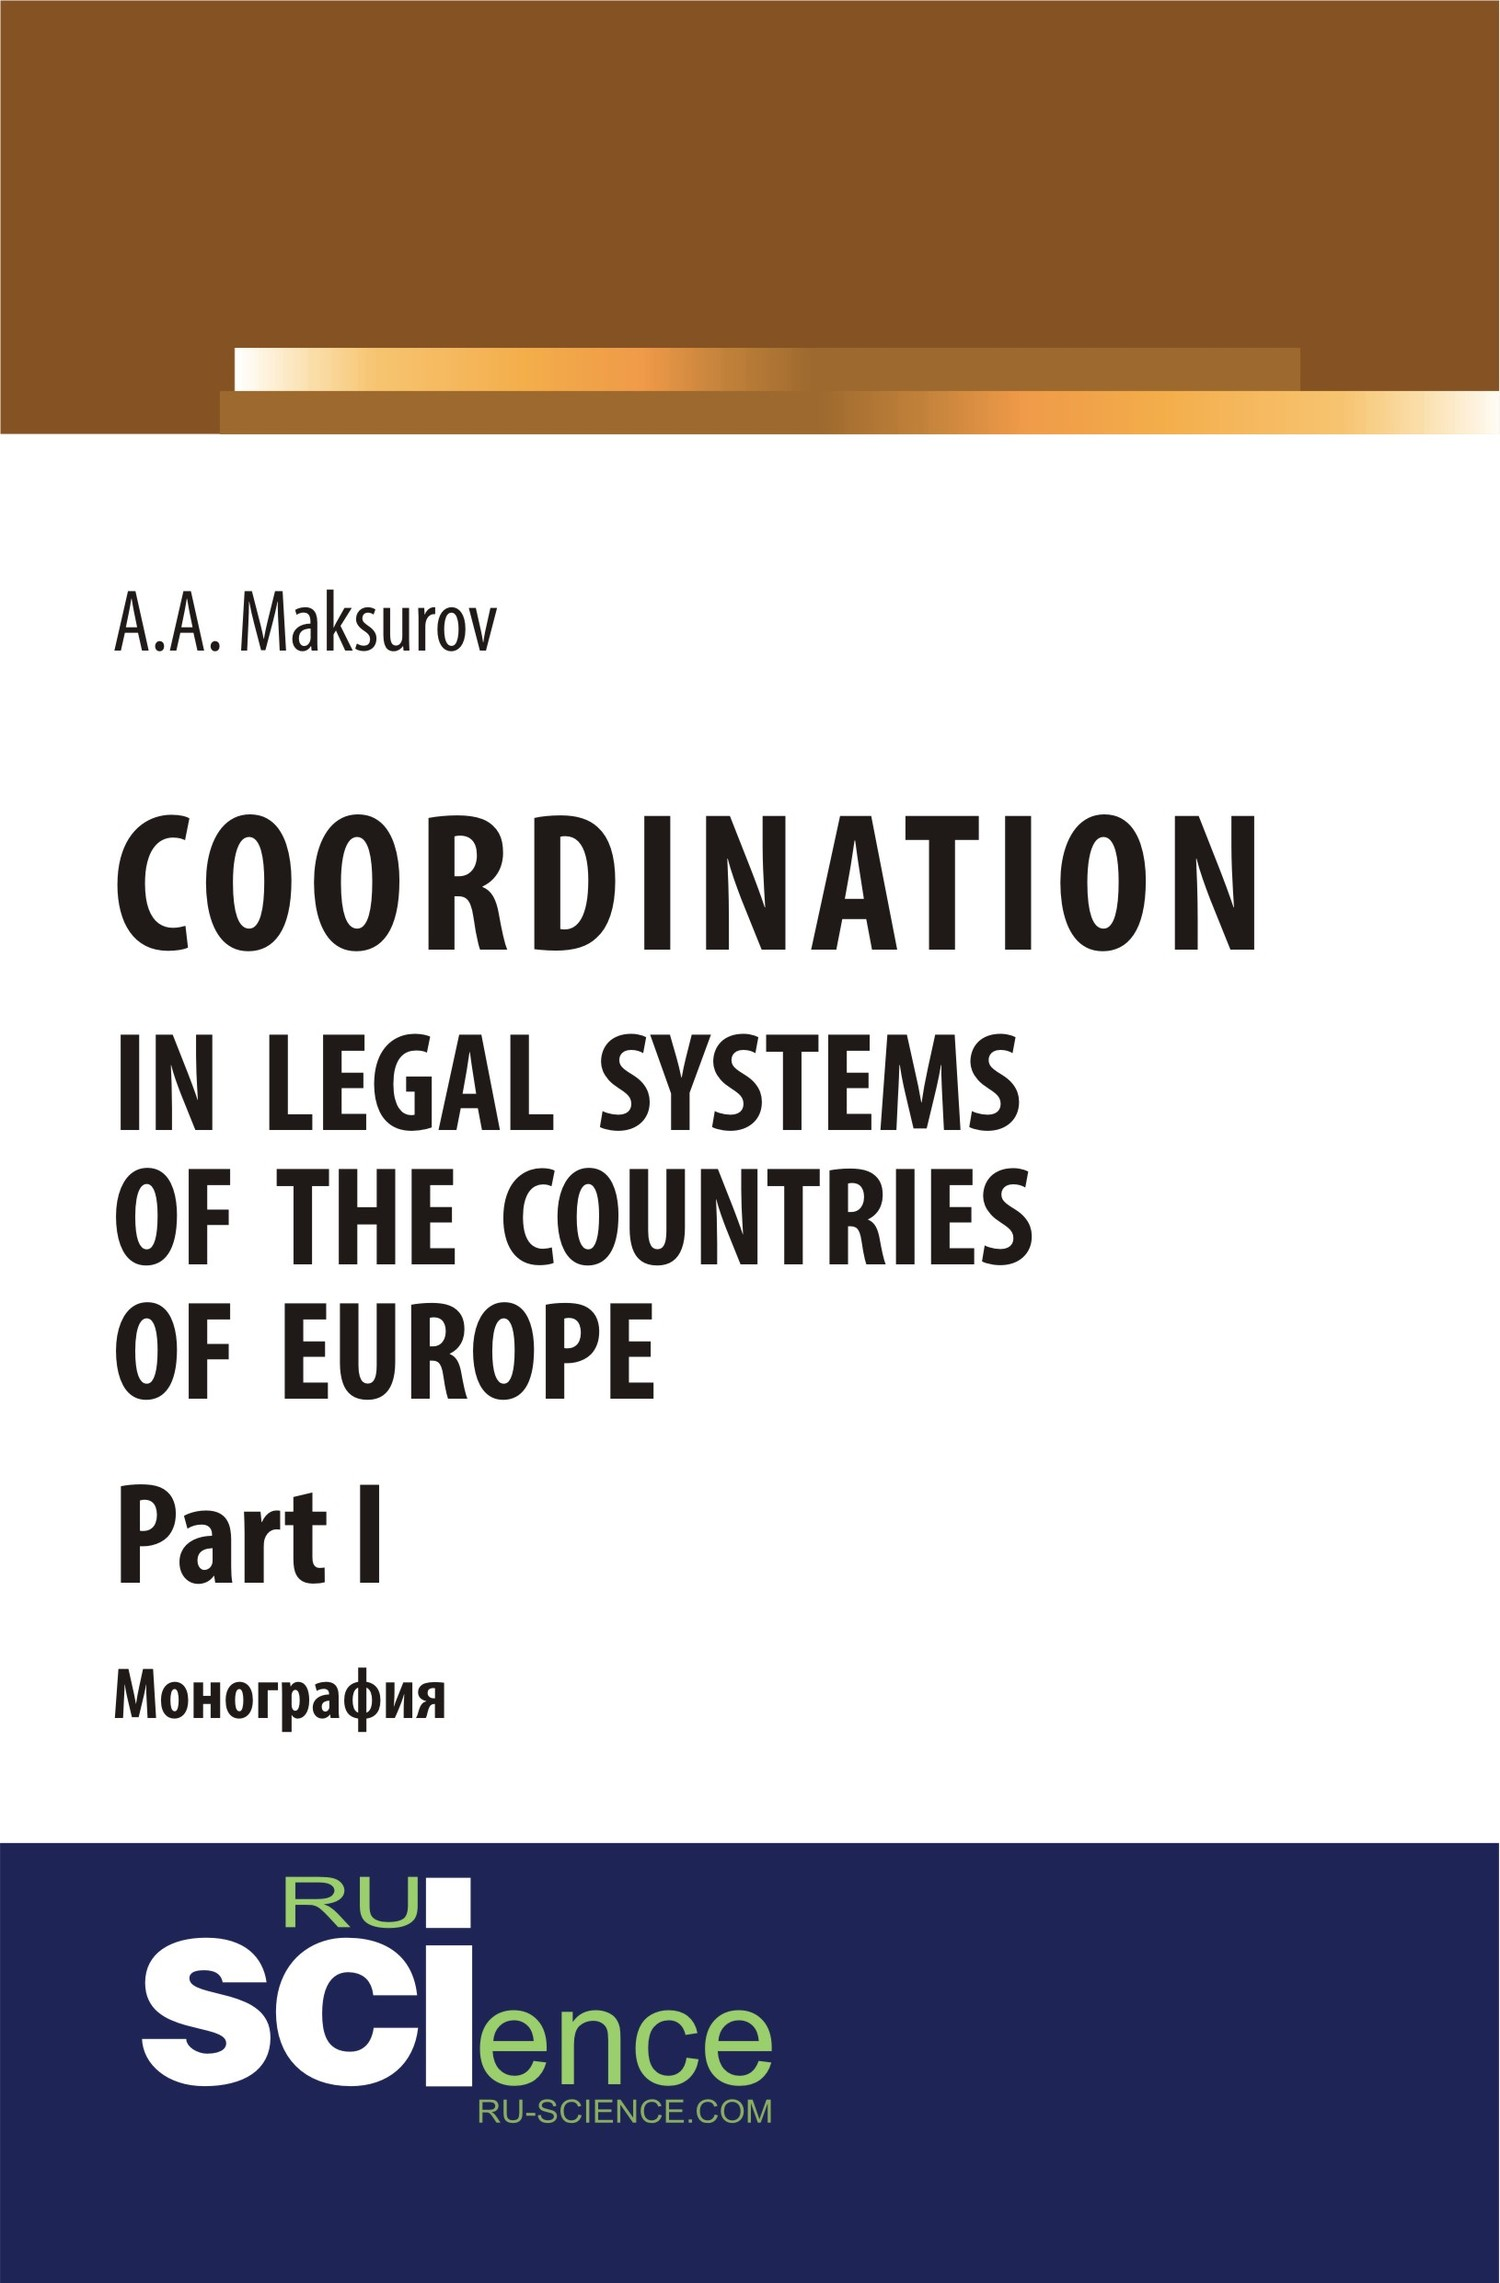 А. А. Максуров Coordination in legal systems of the countries of Europe. Part I passive activity rules – law